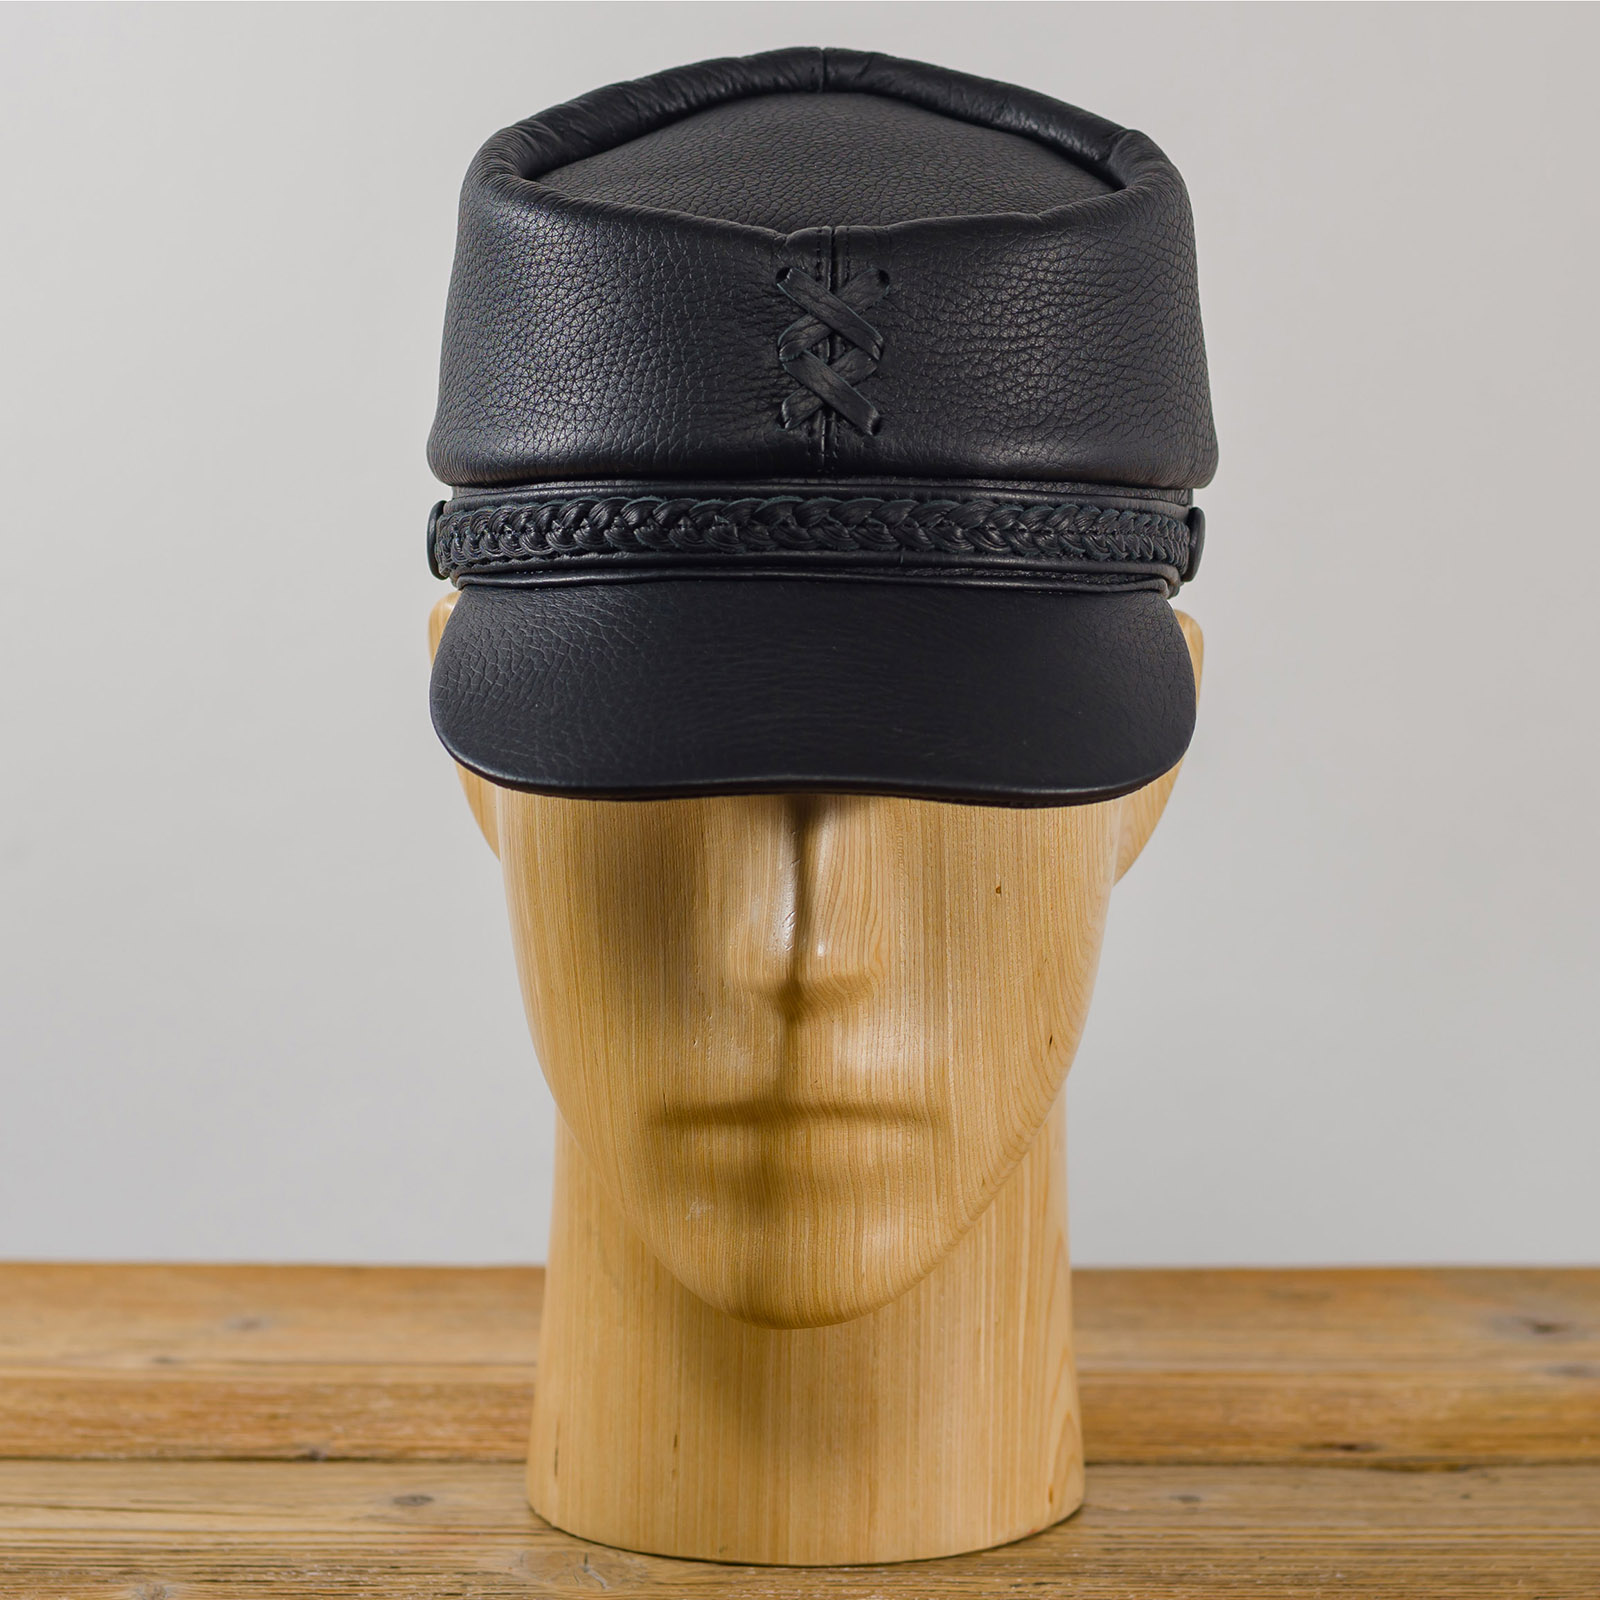 Genuine leather American Civil War replica kepi secession confederate union army military officers collectible foreign legion